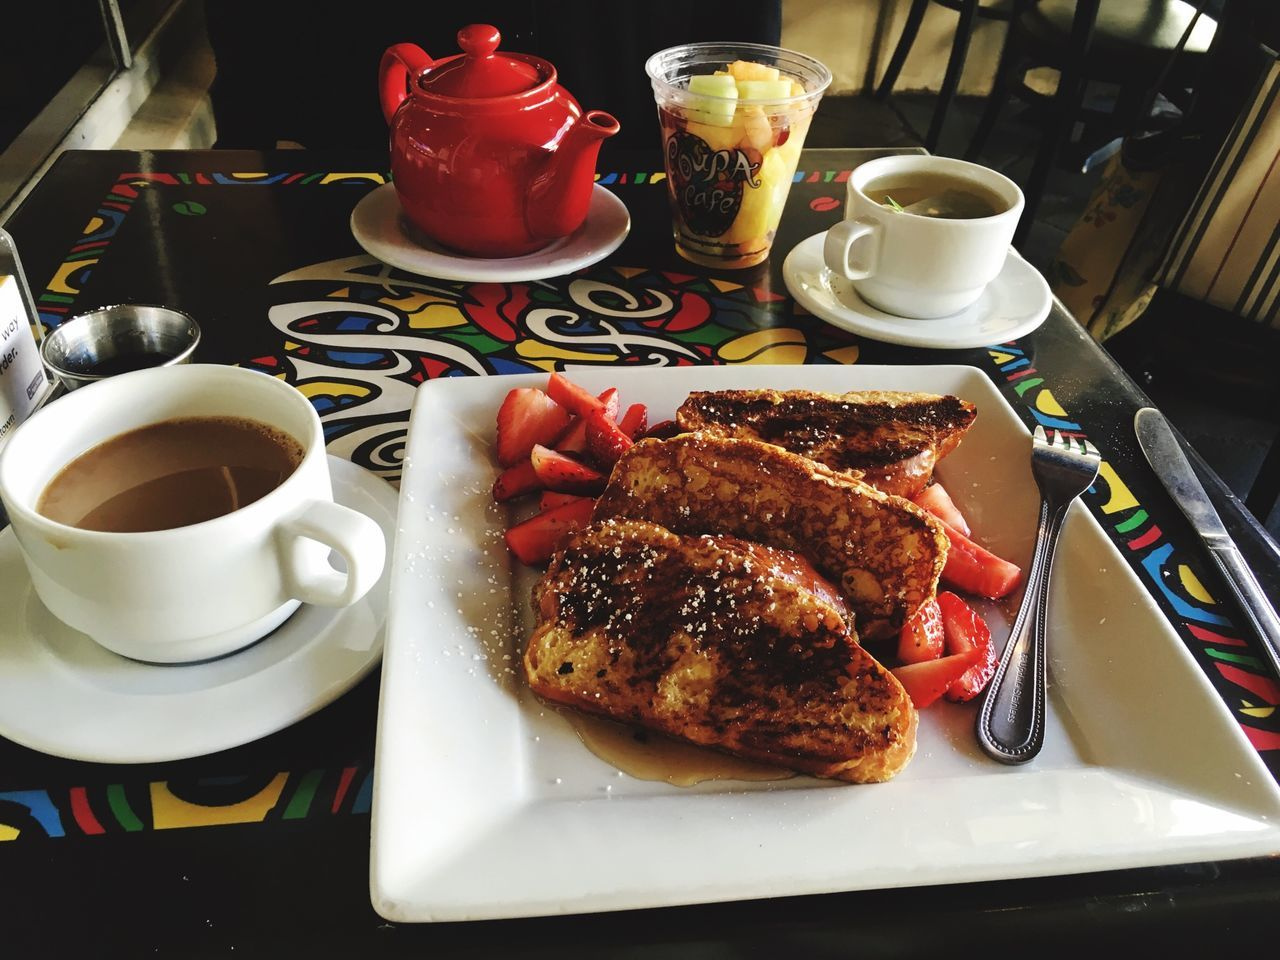 High Angle View Of French Toast With Coffee On Table